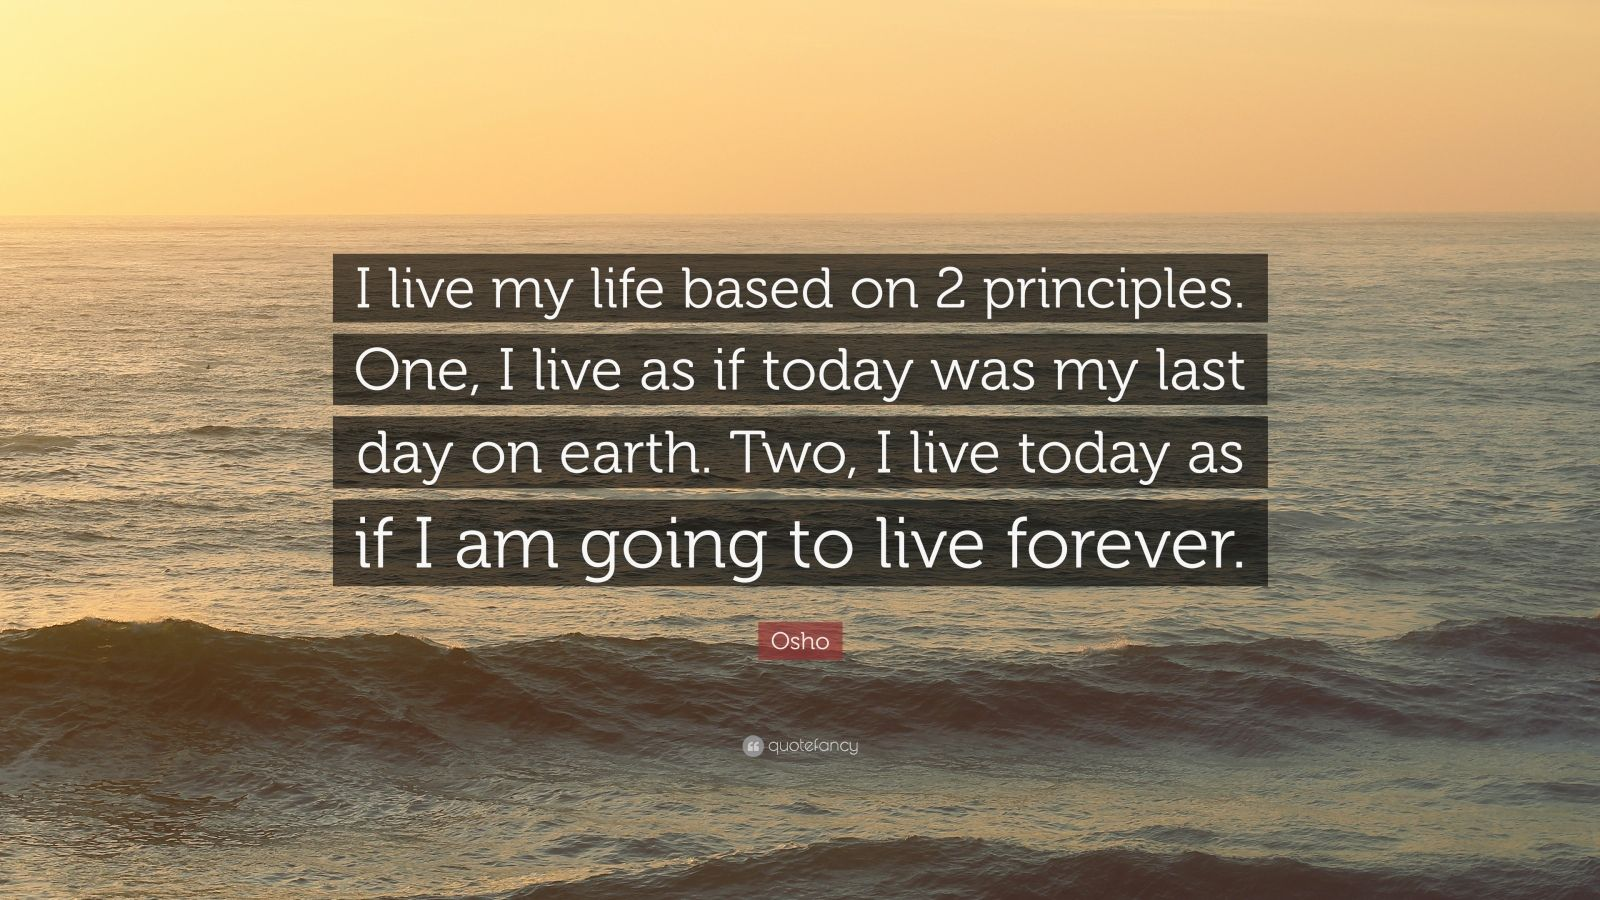 """Osho Quote: """"I live my life based on 2 principles. One, I live as if today was my last day on earth. Two, I live today as if I am going to live forever."""""""